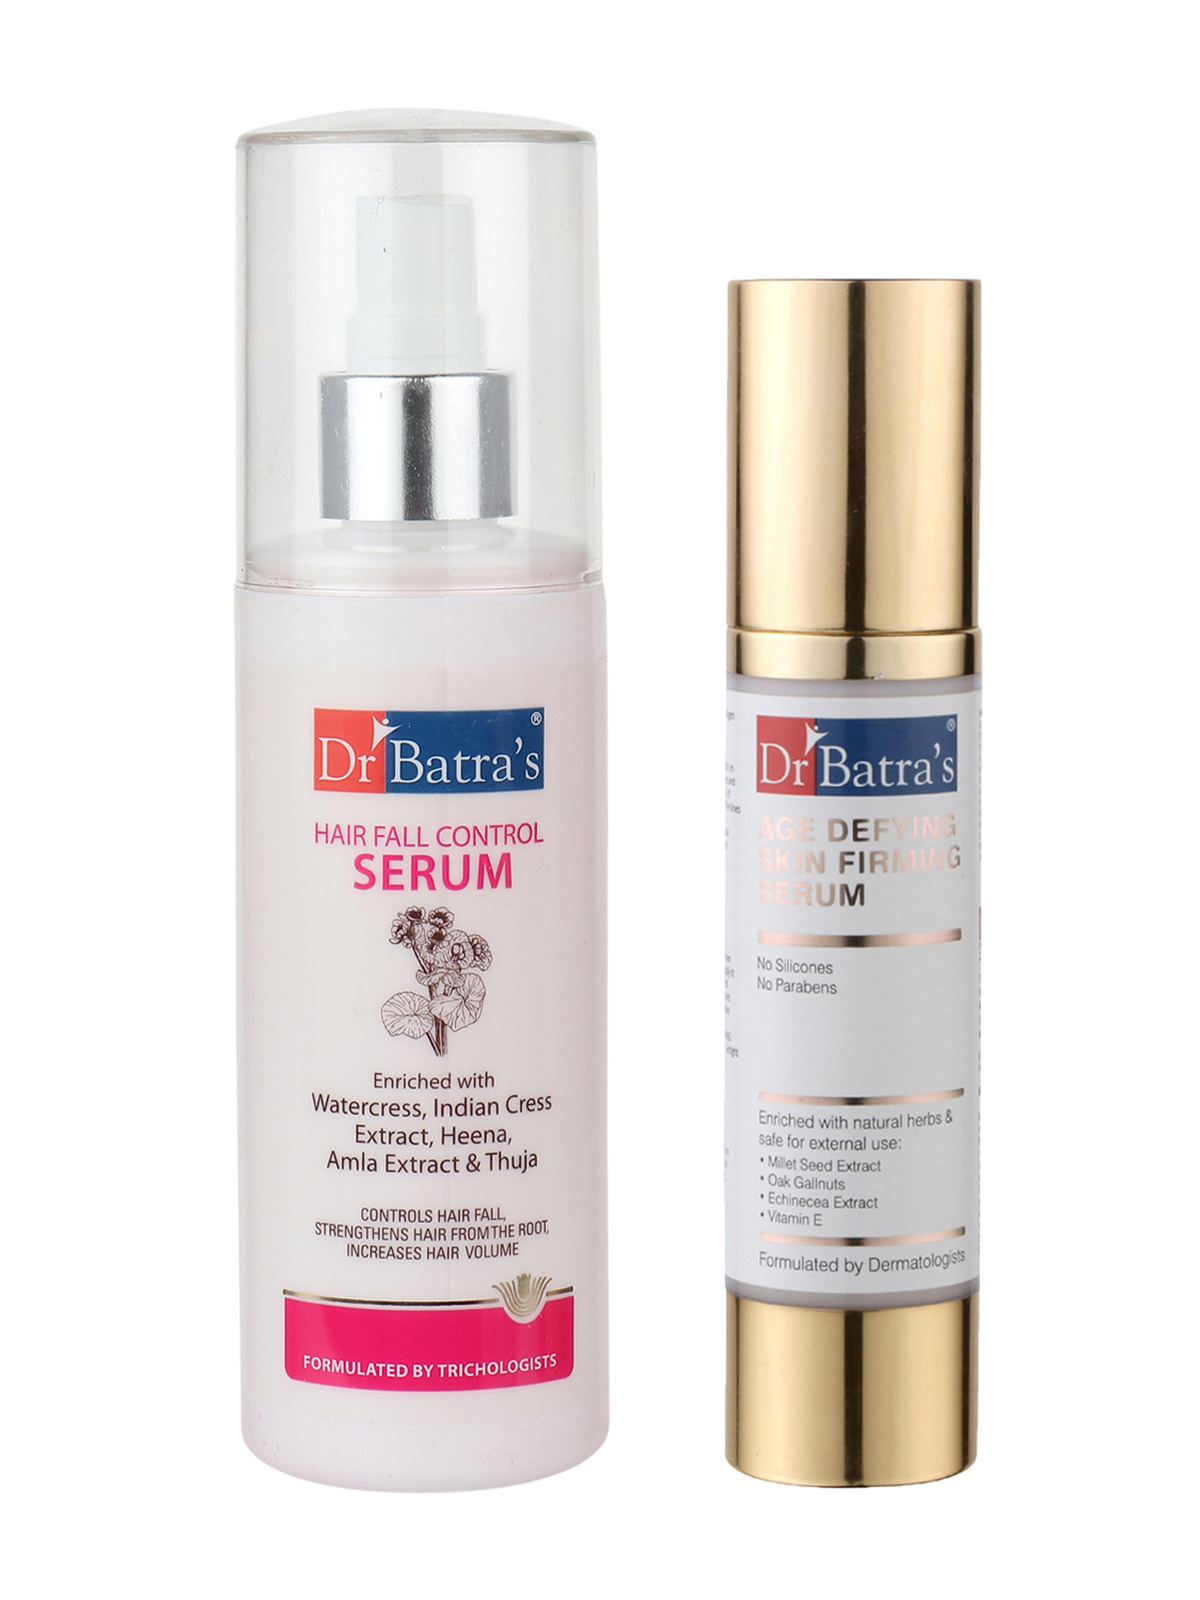 Dr Batra's | Dr Batra's Hair Fall Control Serum-125mland Age defying Skin firming Serum - 50 g (Pack of 2 for Men and Women)